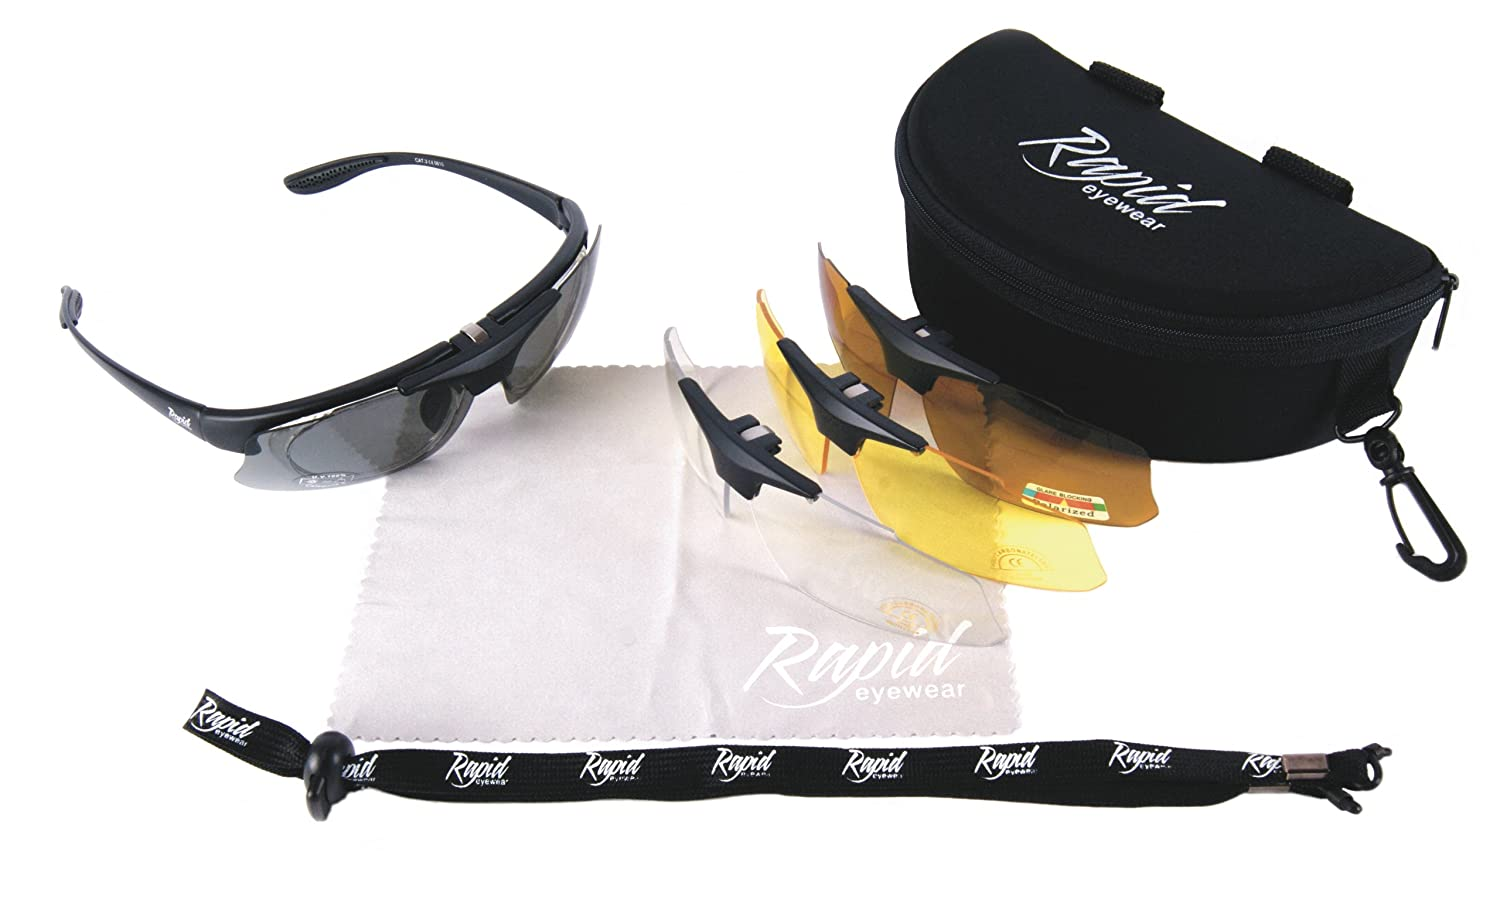 d81443a44dd Amazon.com  Rapid Eyewear Pro Performance Plus RX SPORTS SUNGLASSES FRAME  with Interchangeable UV Polarized Lenses. For Men and Women.